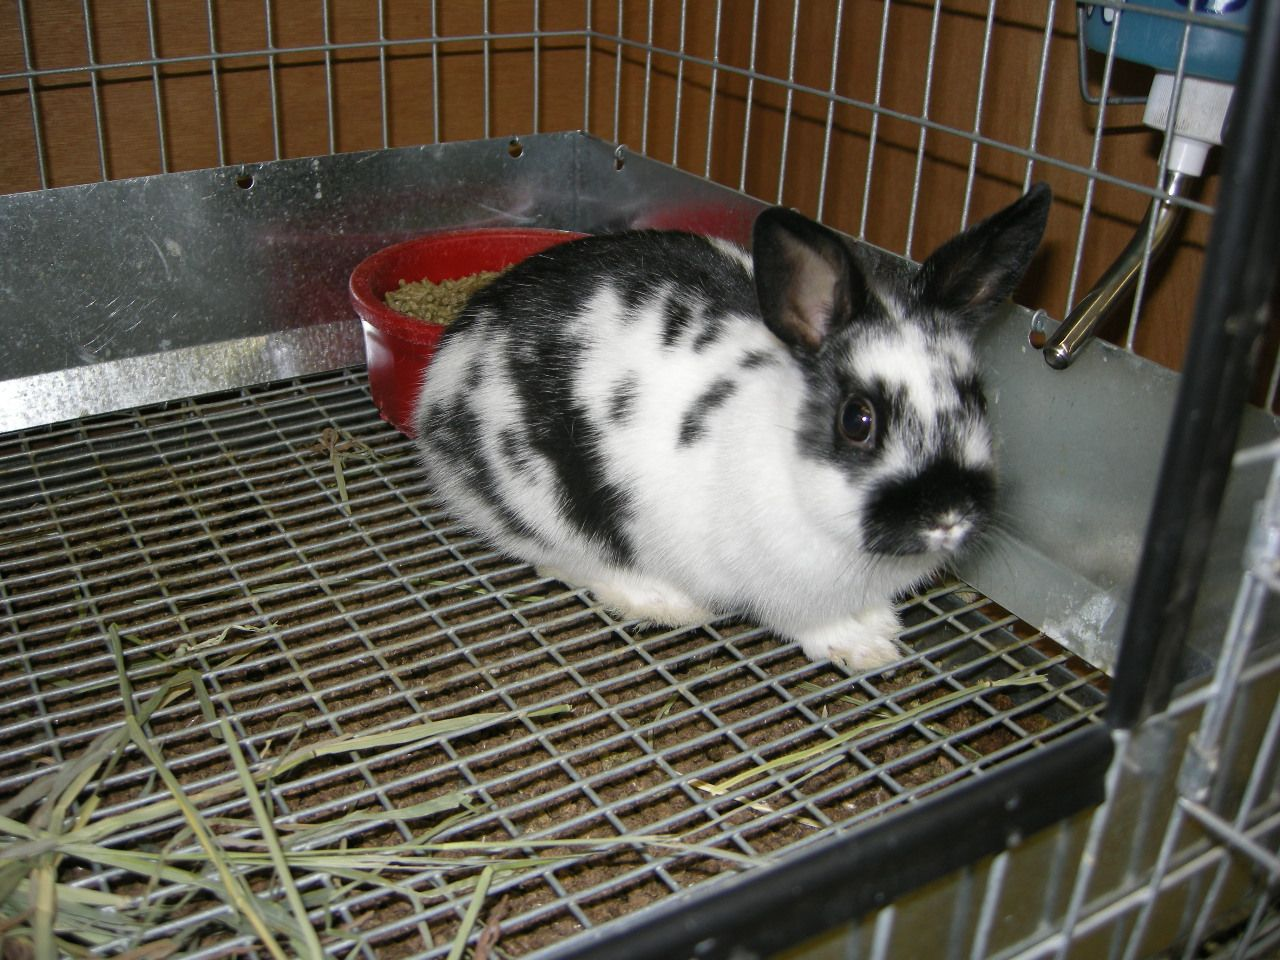 Eight years ago I found this little guy. I can hardly believe he is the same shy little bunny in this photo.